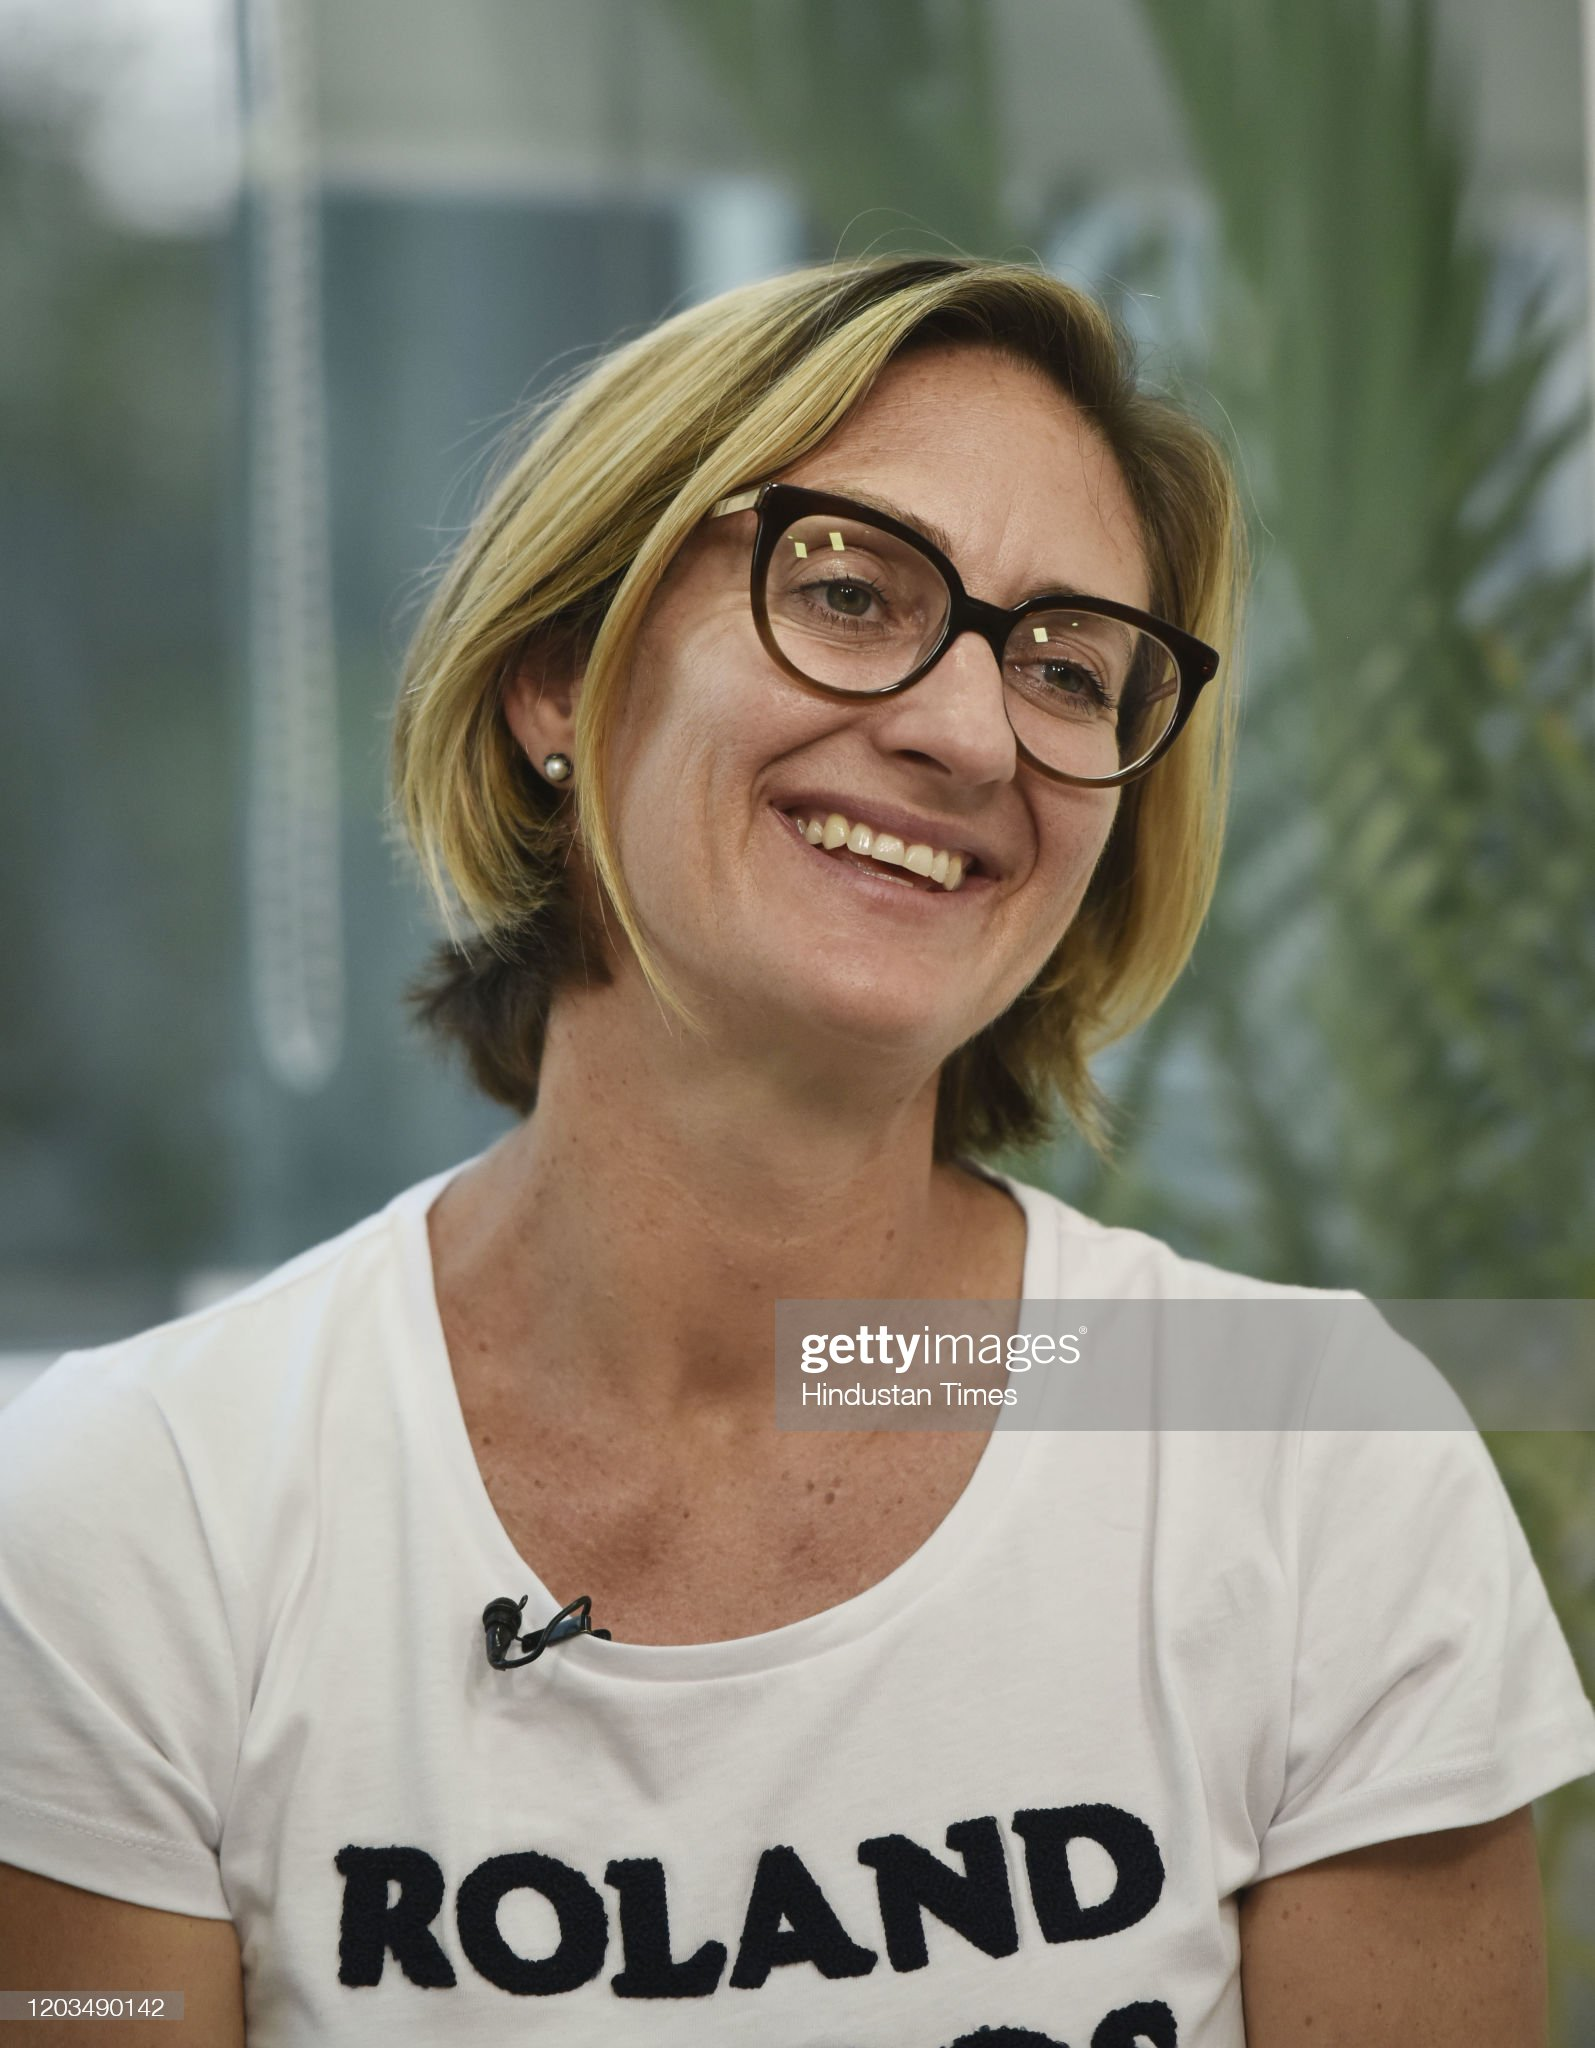 Profile Of Former Tennis Player Mary Pierce : News Photo